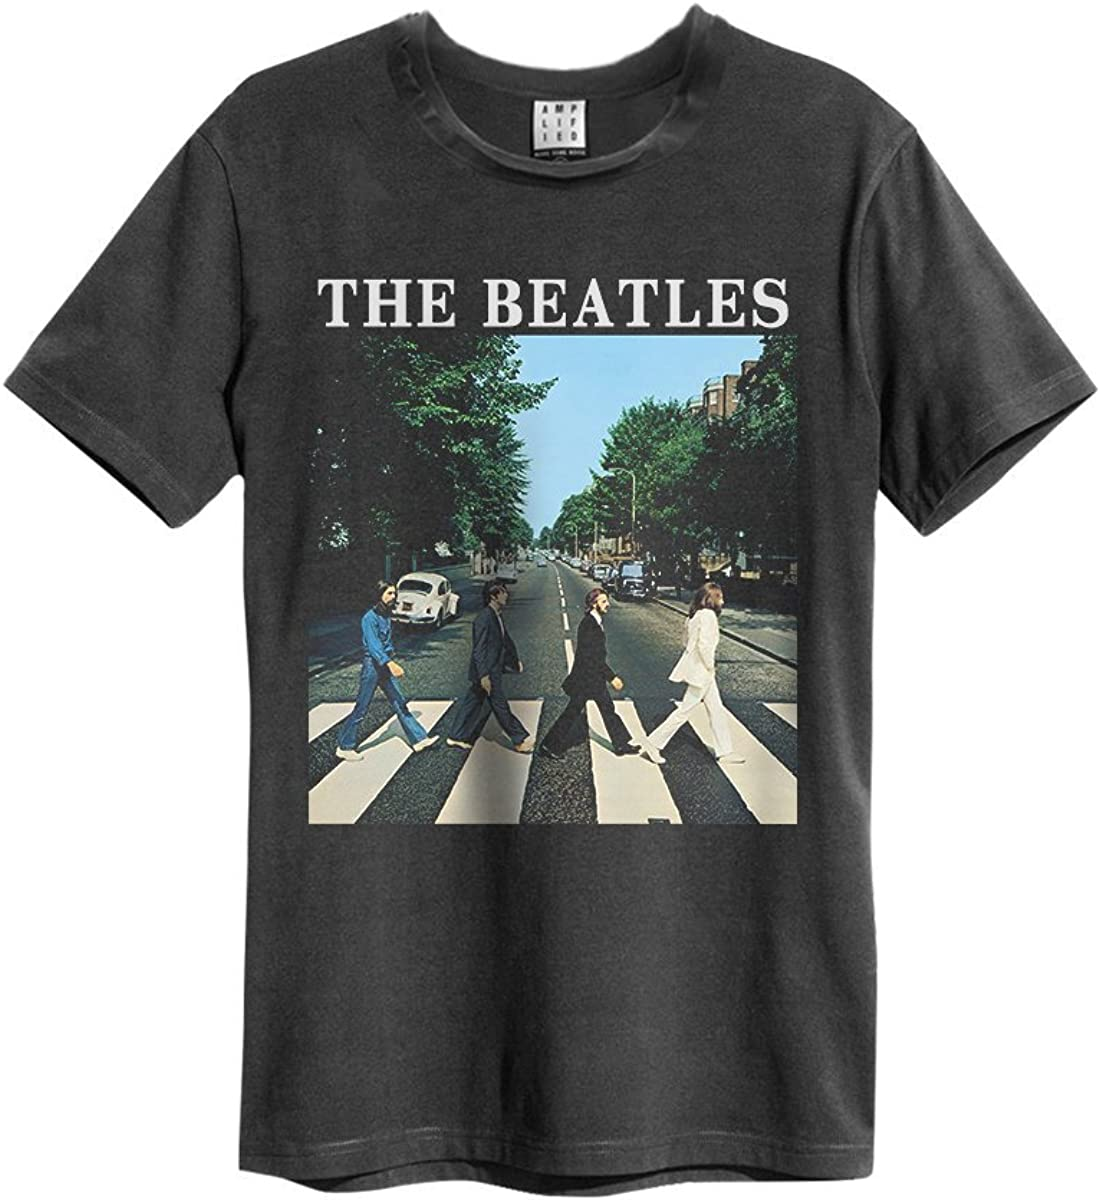 Amplified The Beatles 'Abbey Road' T-Shirt Clothing